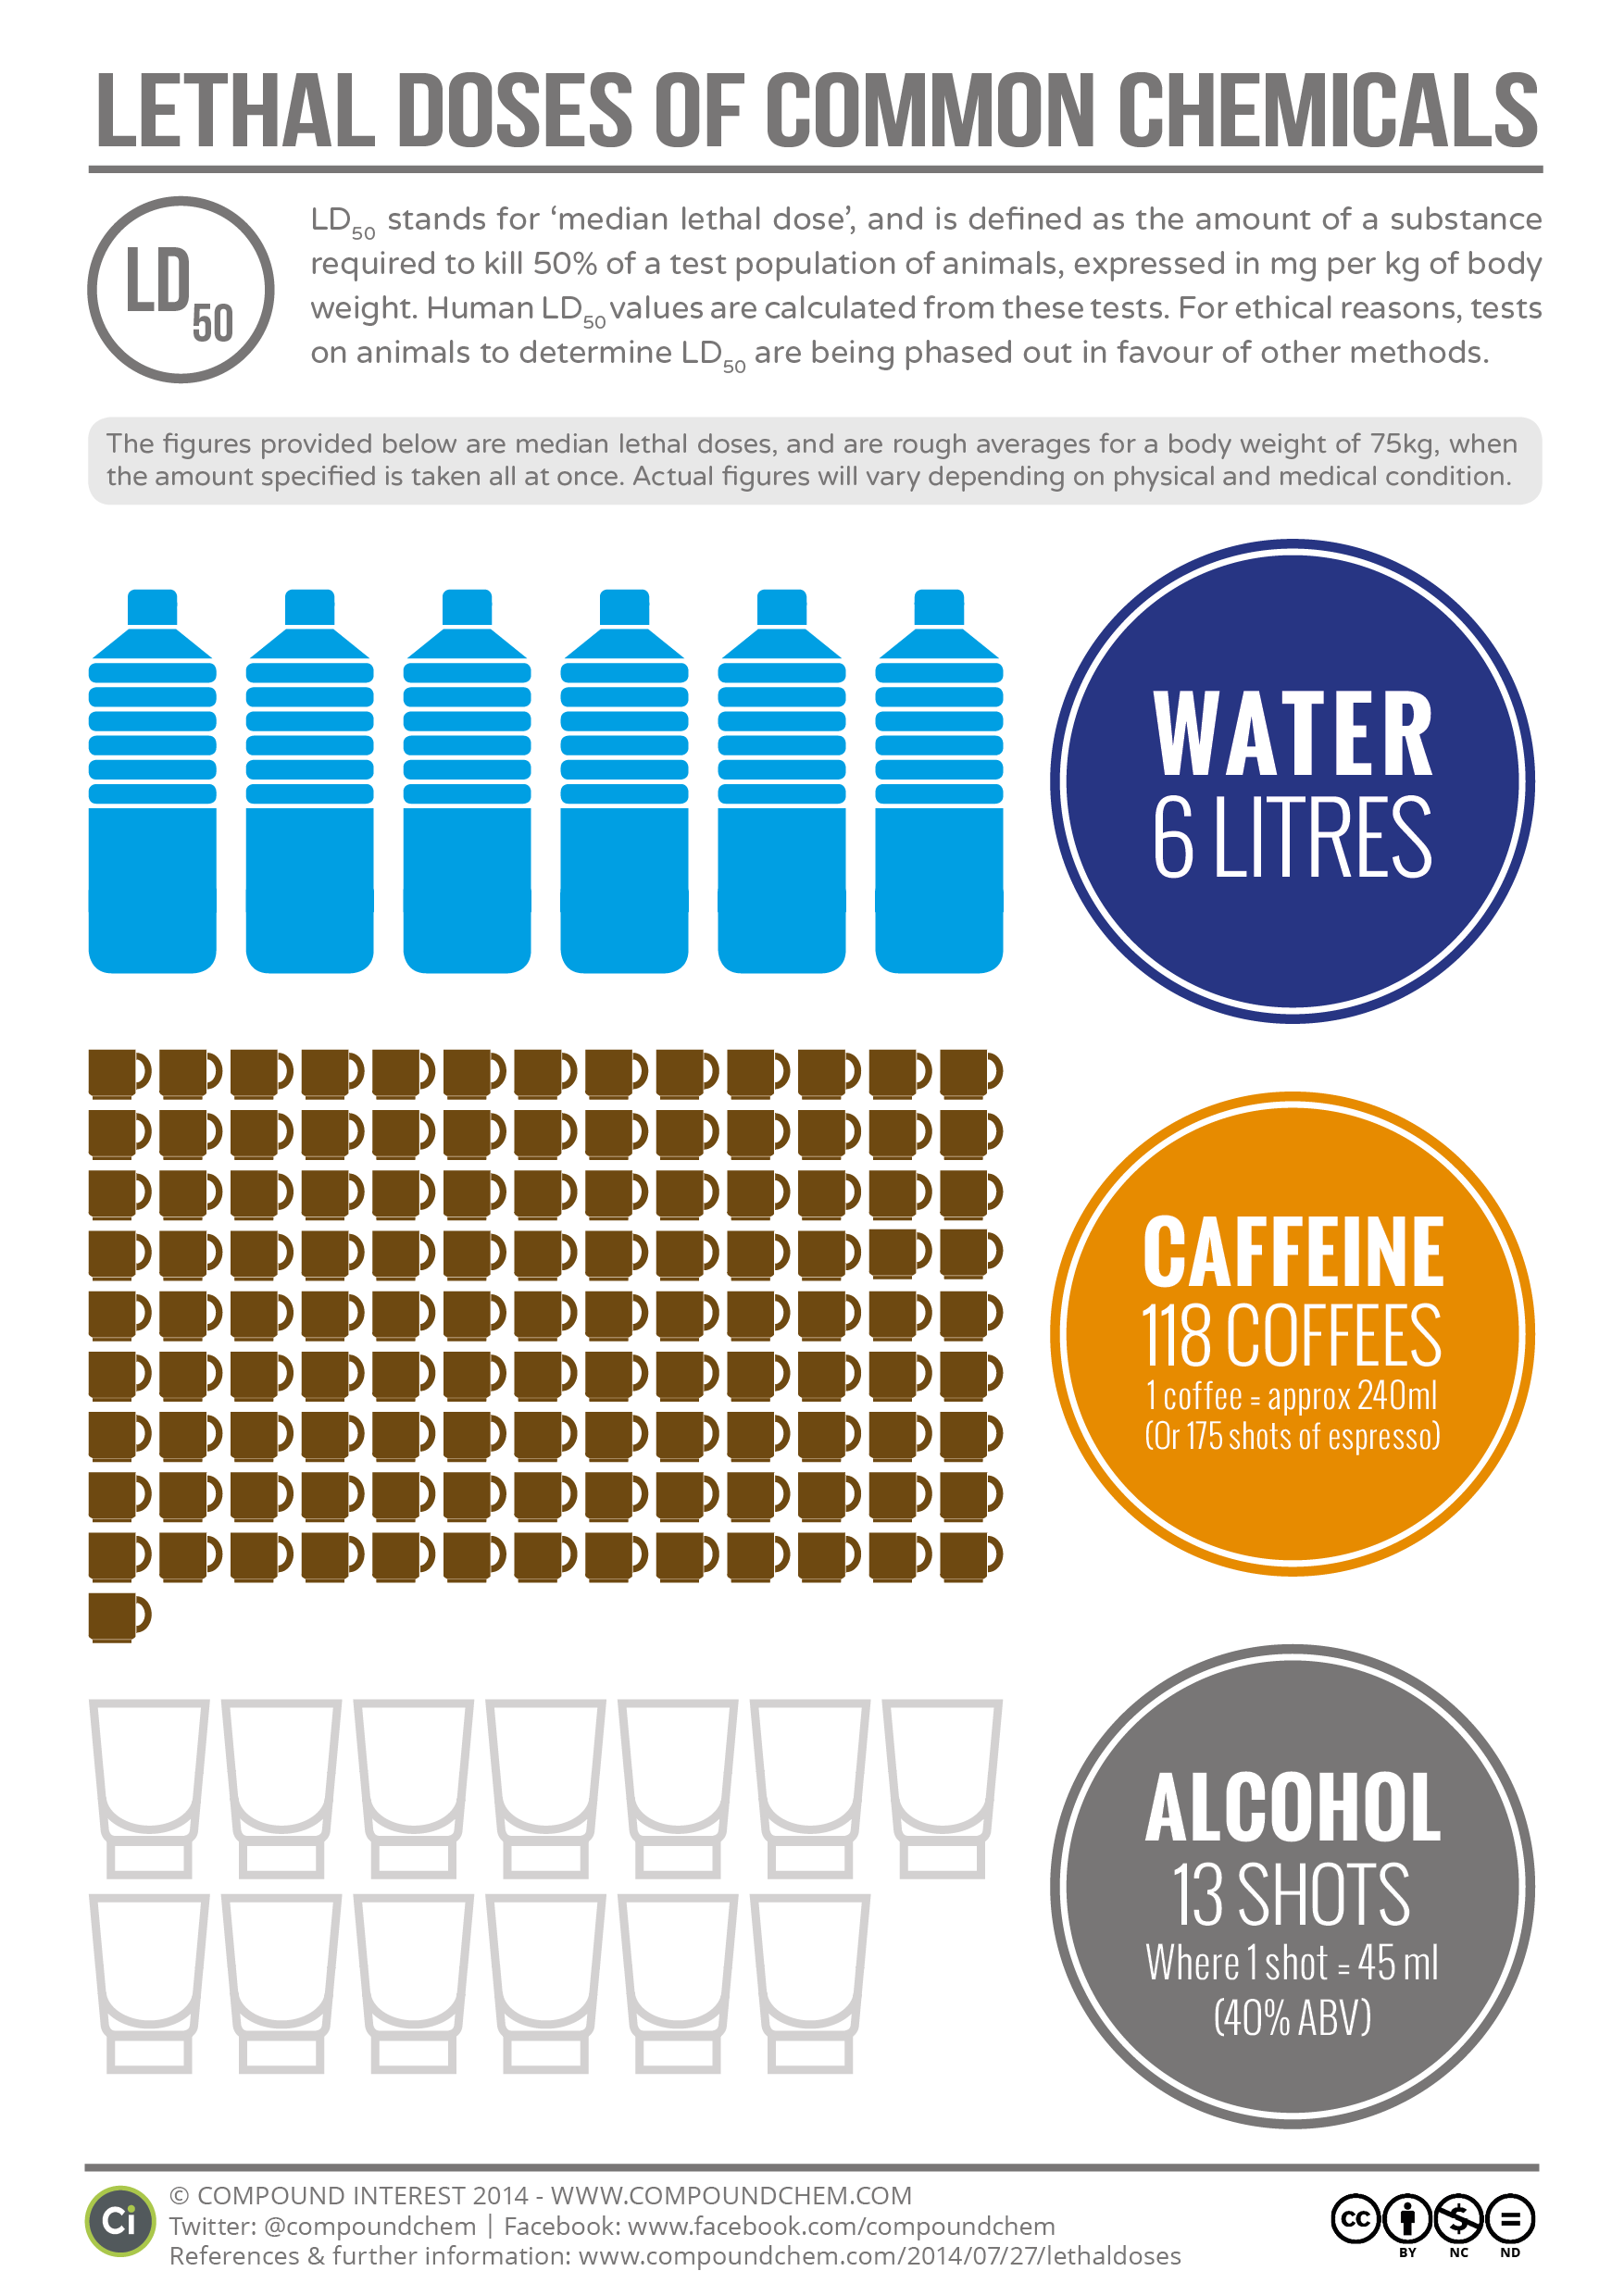 Compound Interest - Lethal Doses of Water, Caffeine and Alcohol